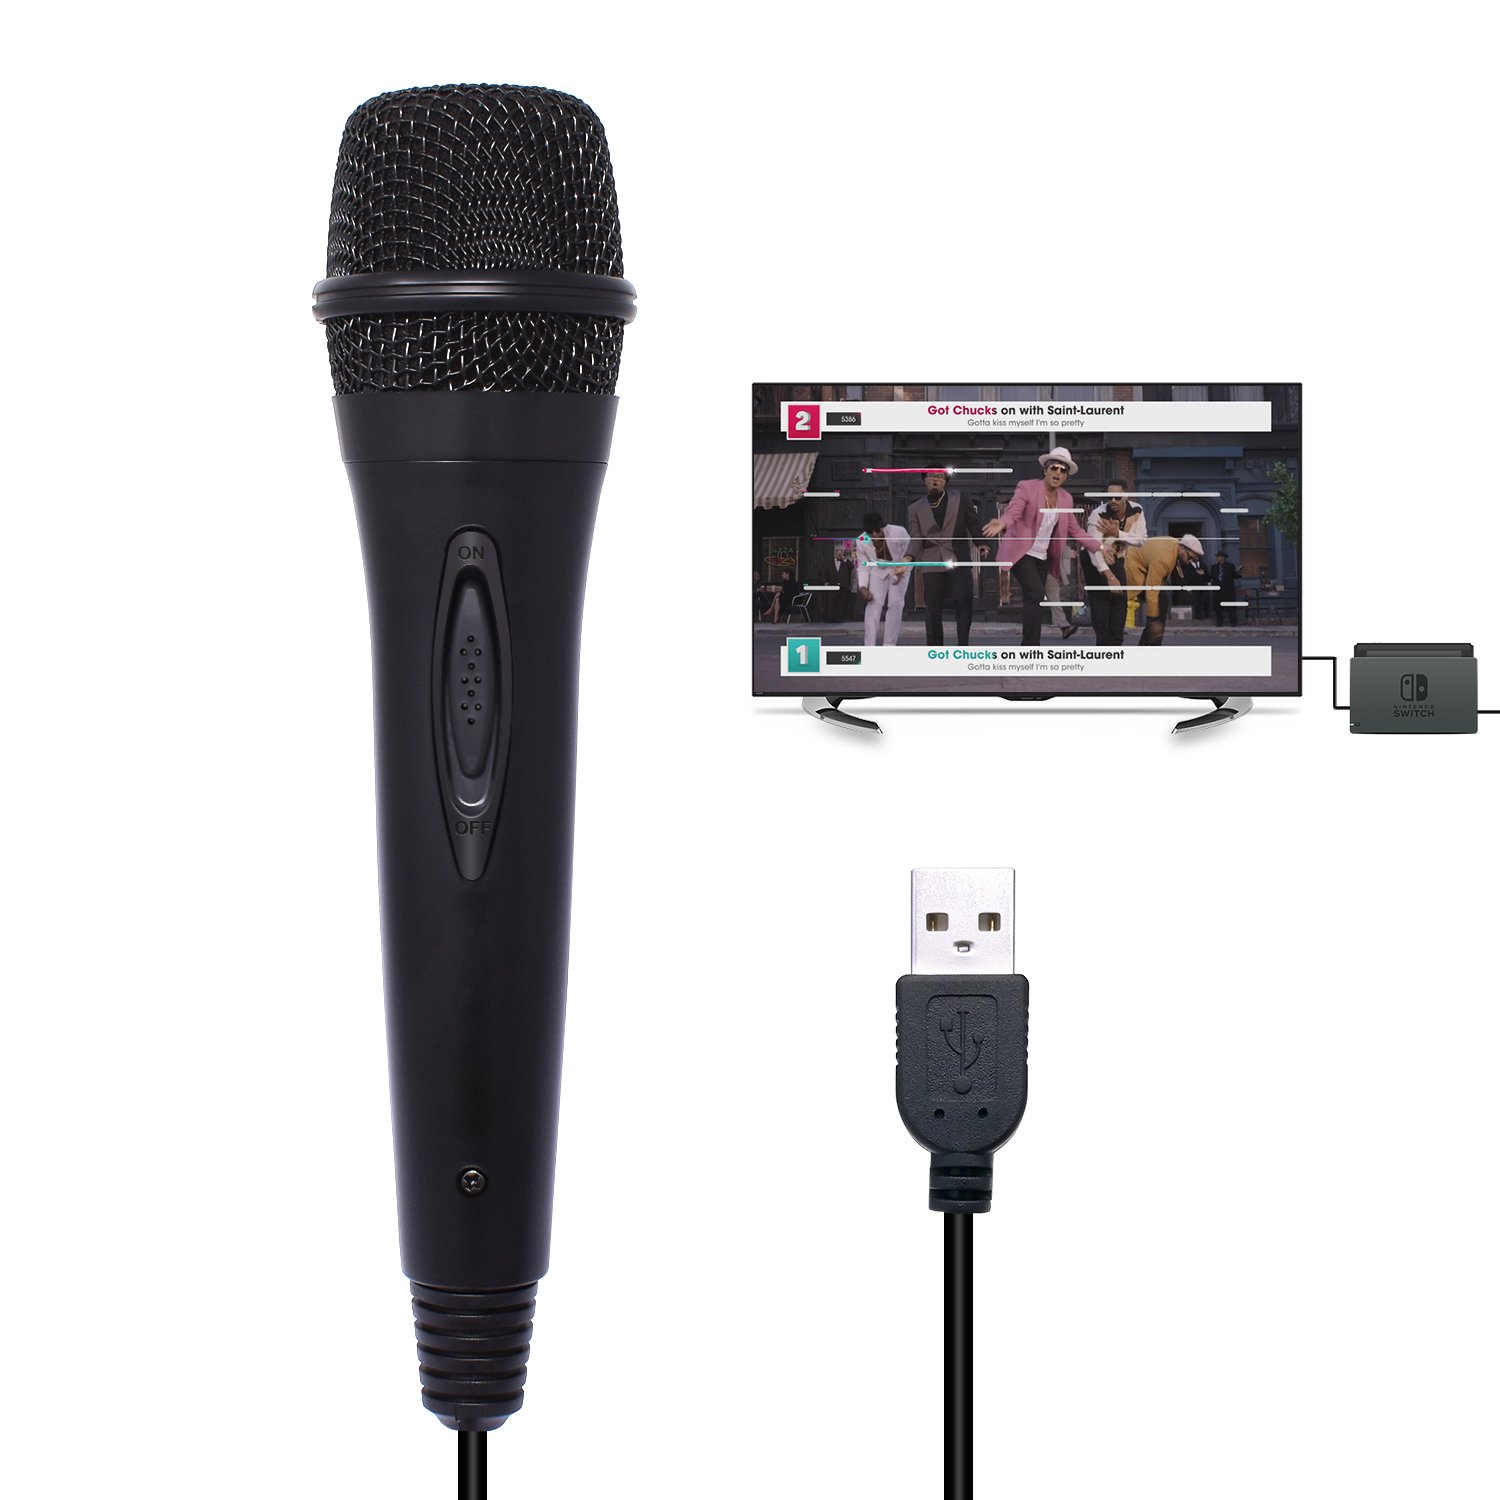 USB Wired Karaoke Gaming Microphone for Nintendo Switch/Wii U/PS4/Xbox One/Xbox 360/PC Singing Game - 9.84ft